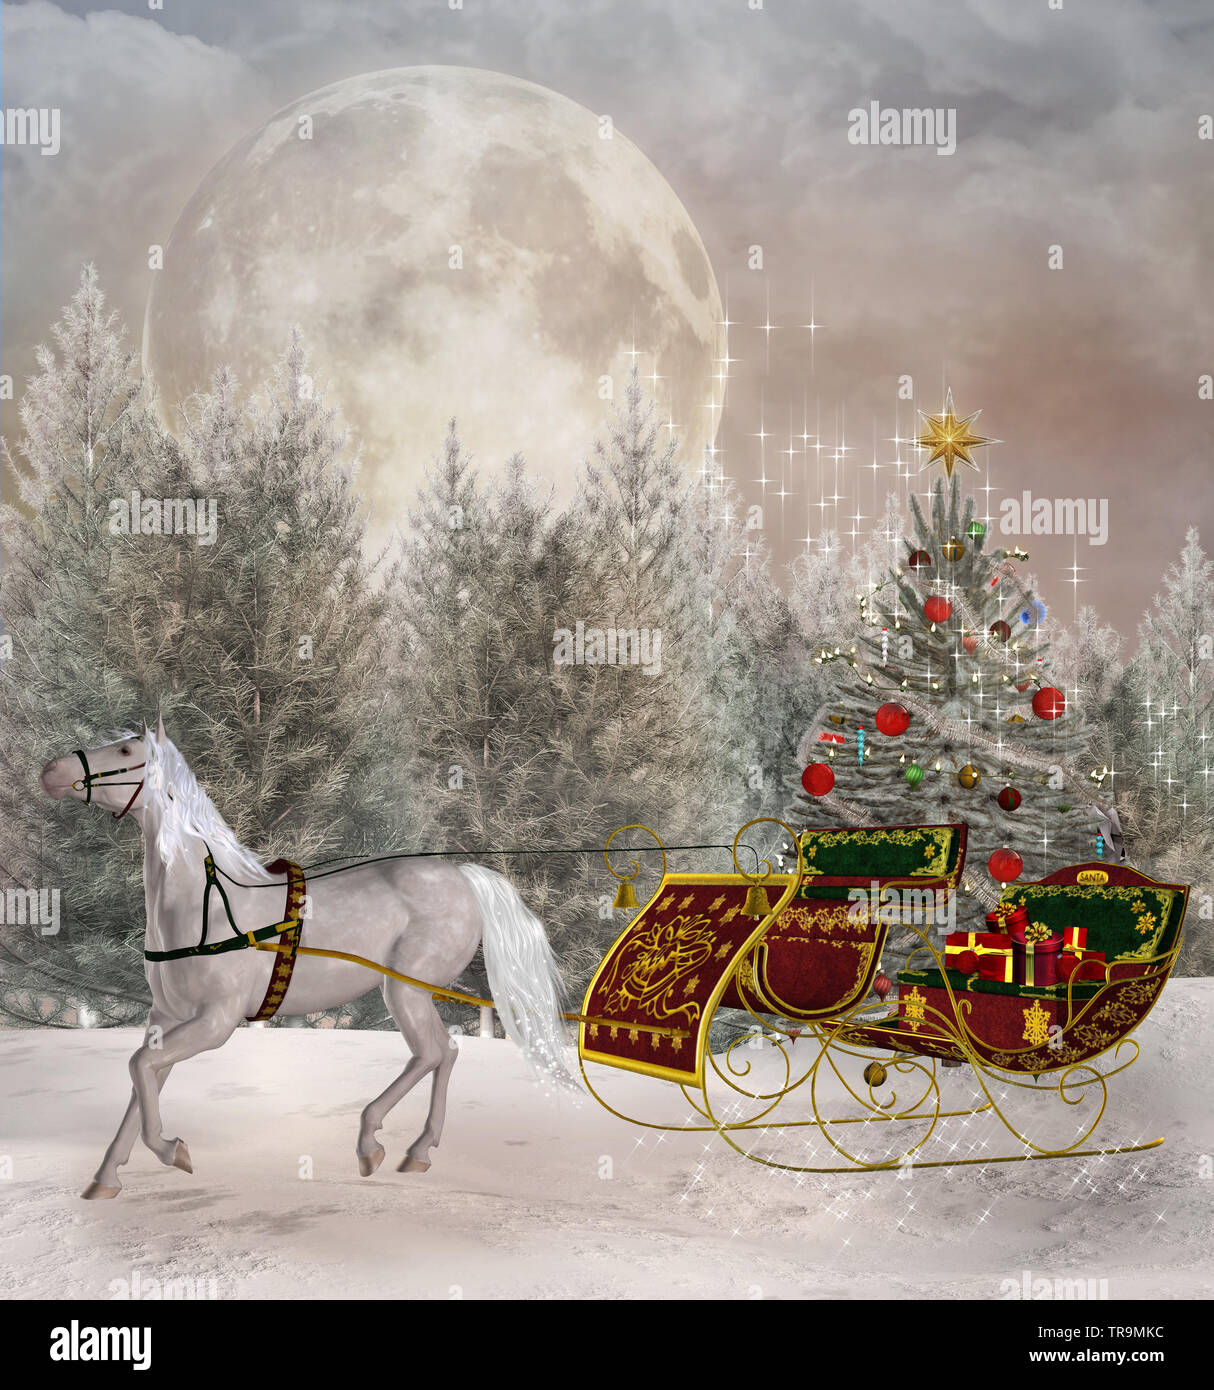 Christmas Travel Scene With A White Horse Dragging A Sledge Full Of Presents Stock Photo Alamy